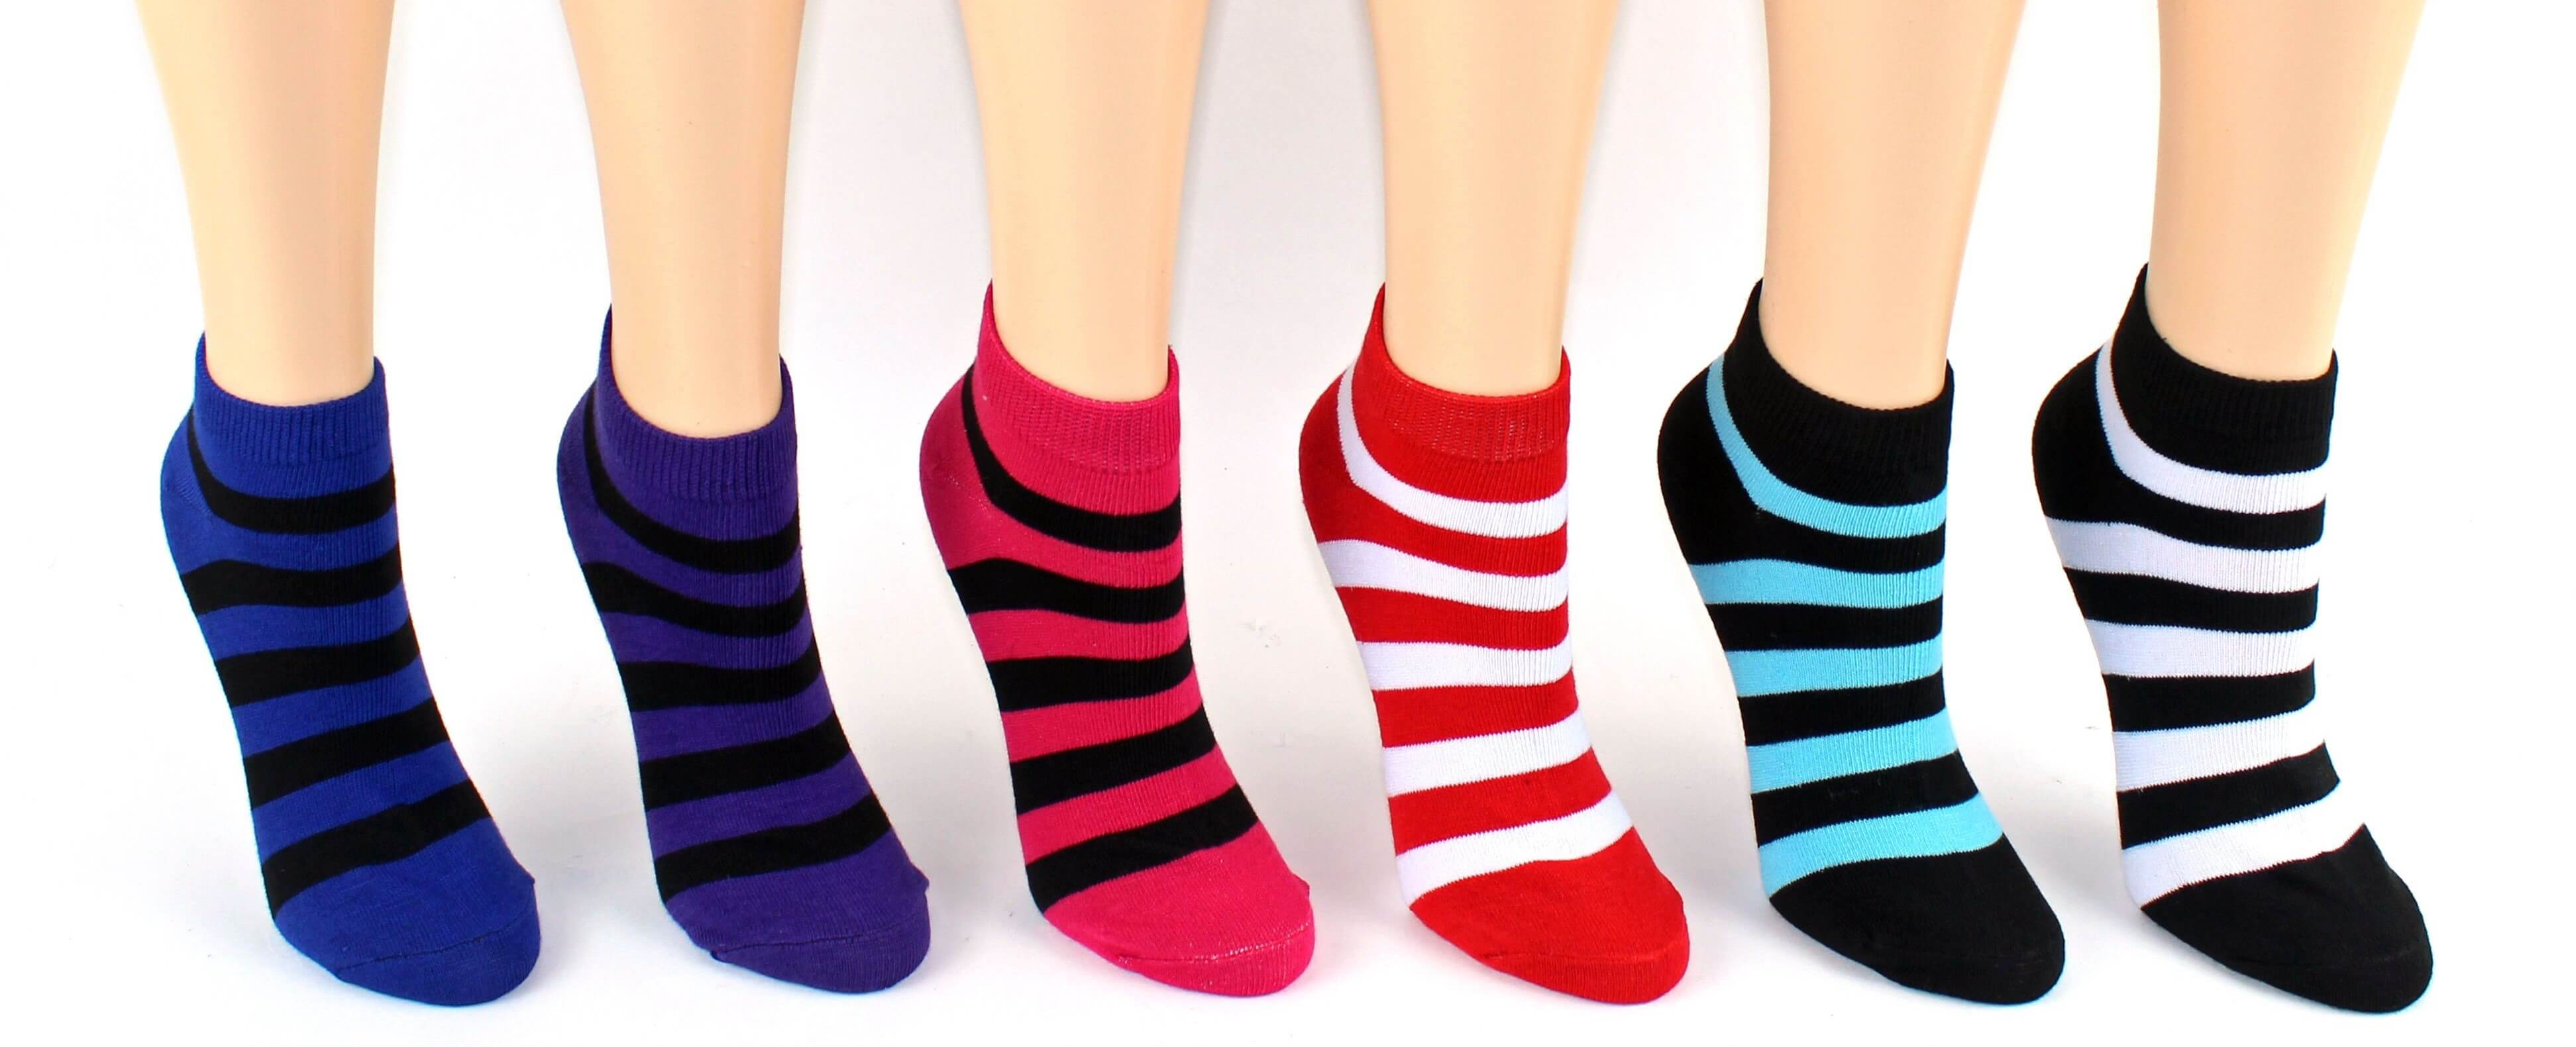 Women's Striped Low Cut Socks